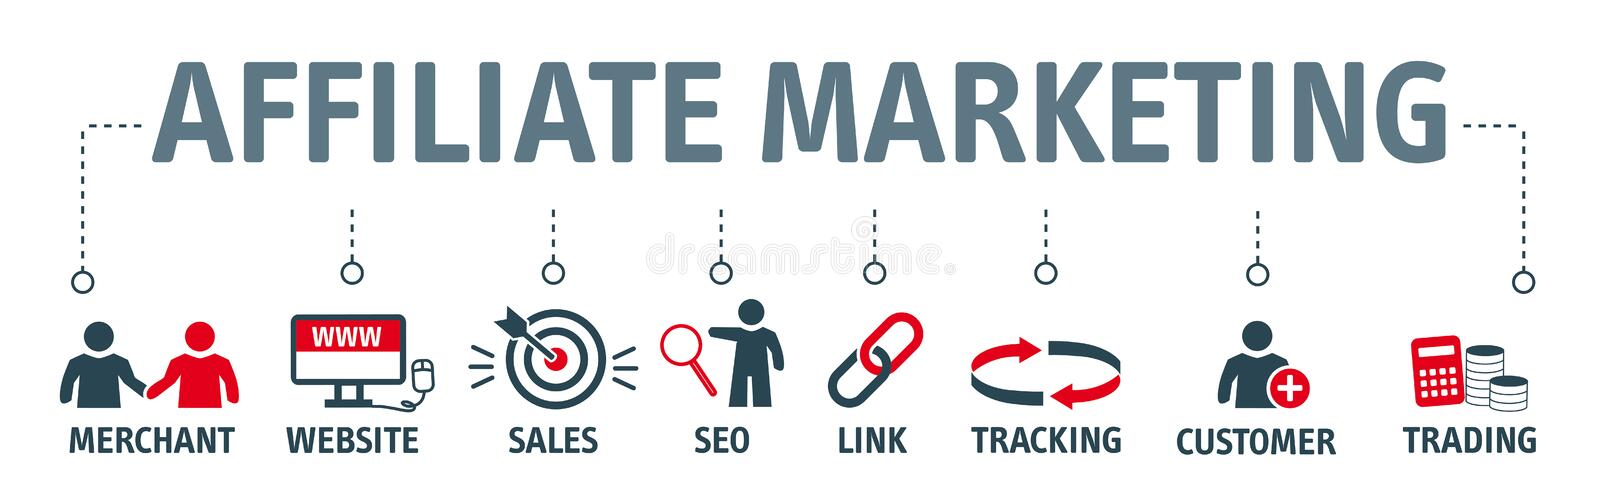 Banner affiliate marketing illustration with icons royalty free illustration